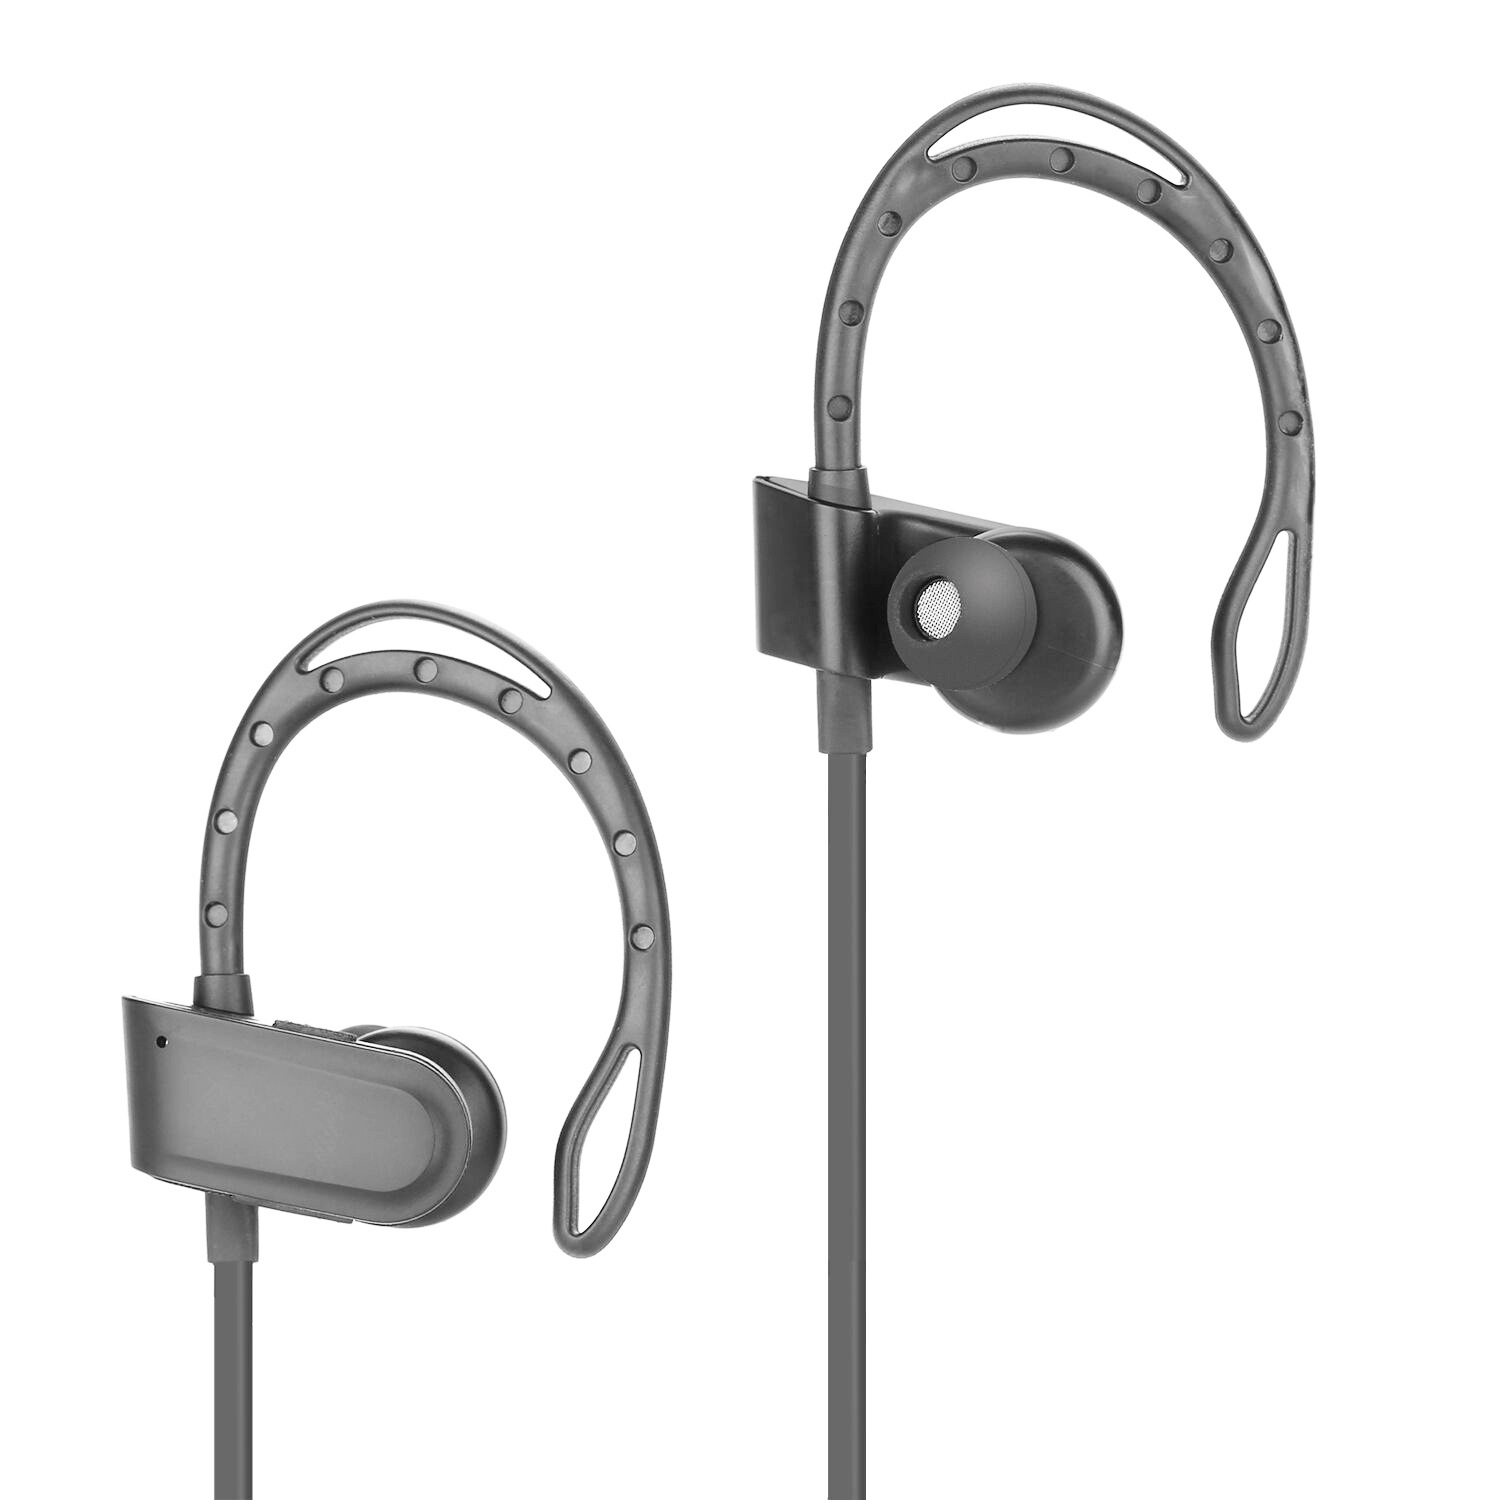 wireless bluetooth headset earphone for iphone 7. Black Bedroom Furniture Sets. Home Design Ideas